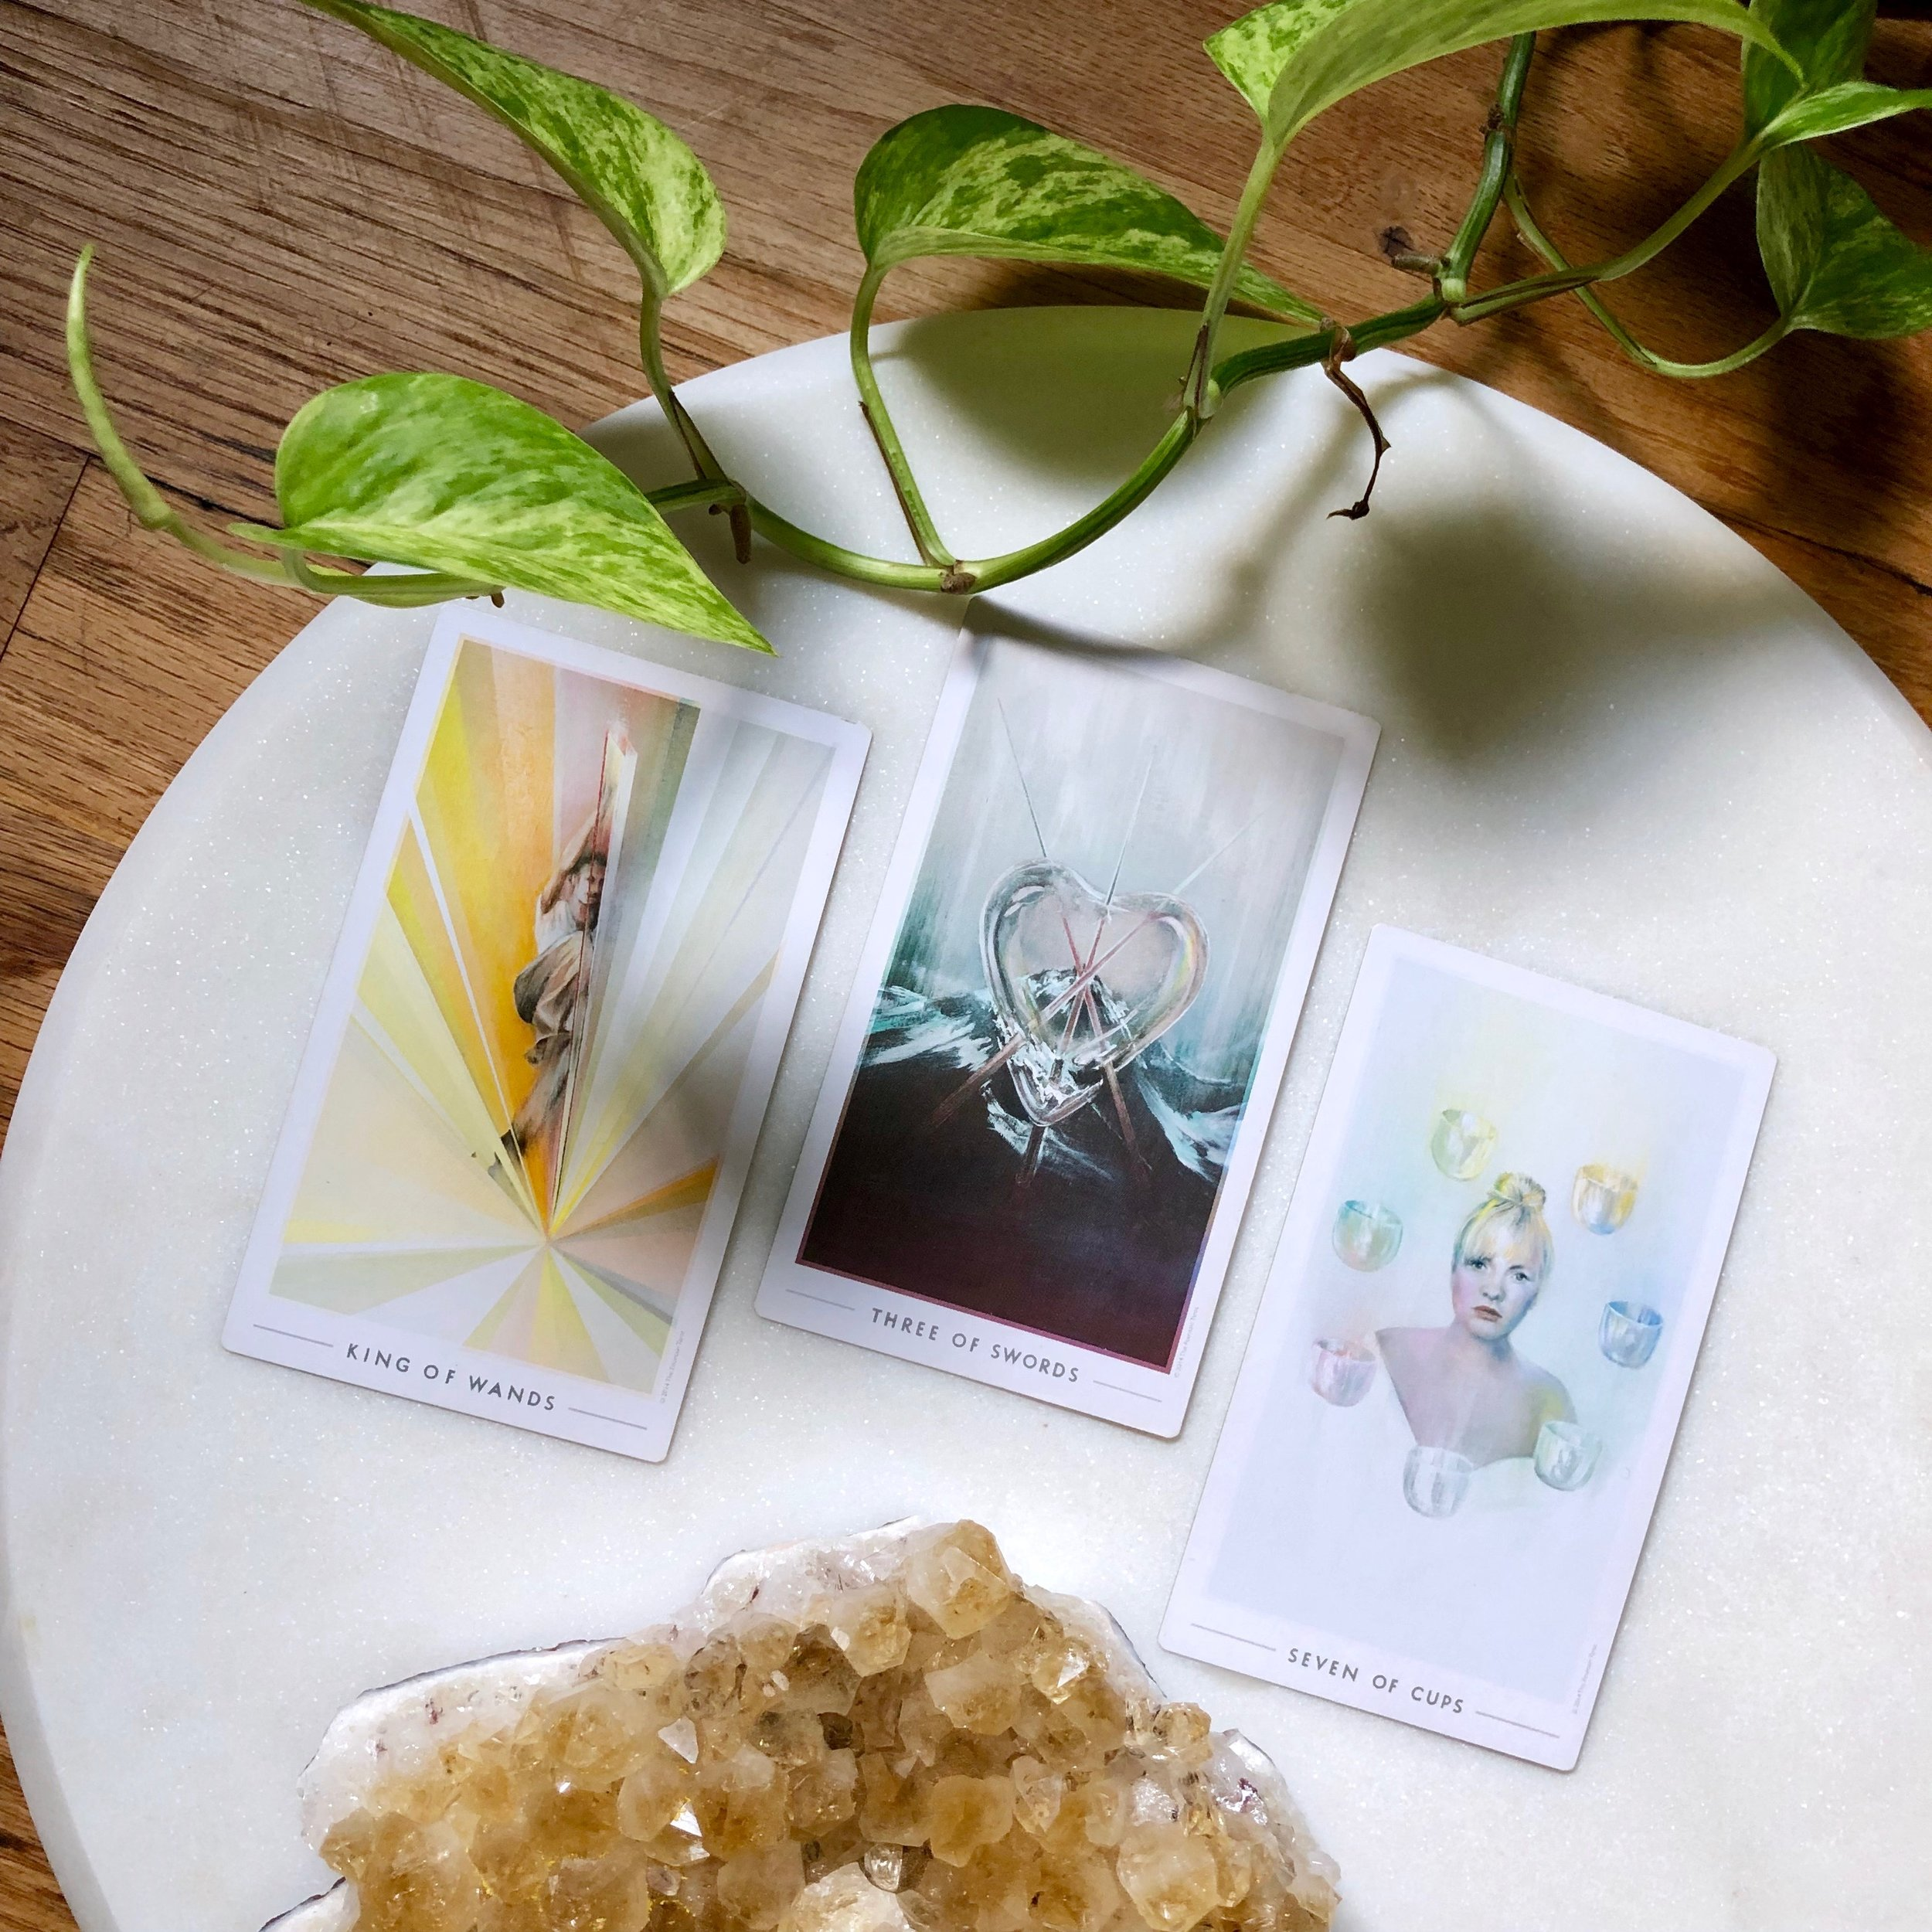 Three Card reading fountain tarot king of wands three of swords seven of cups citrine